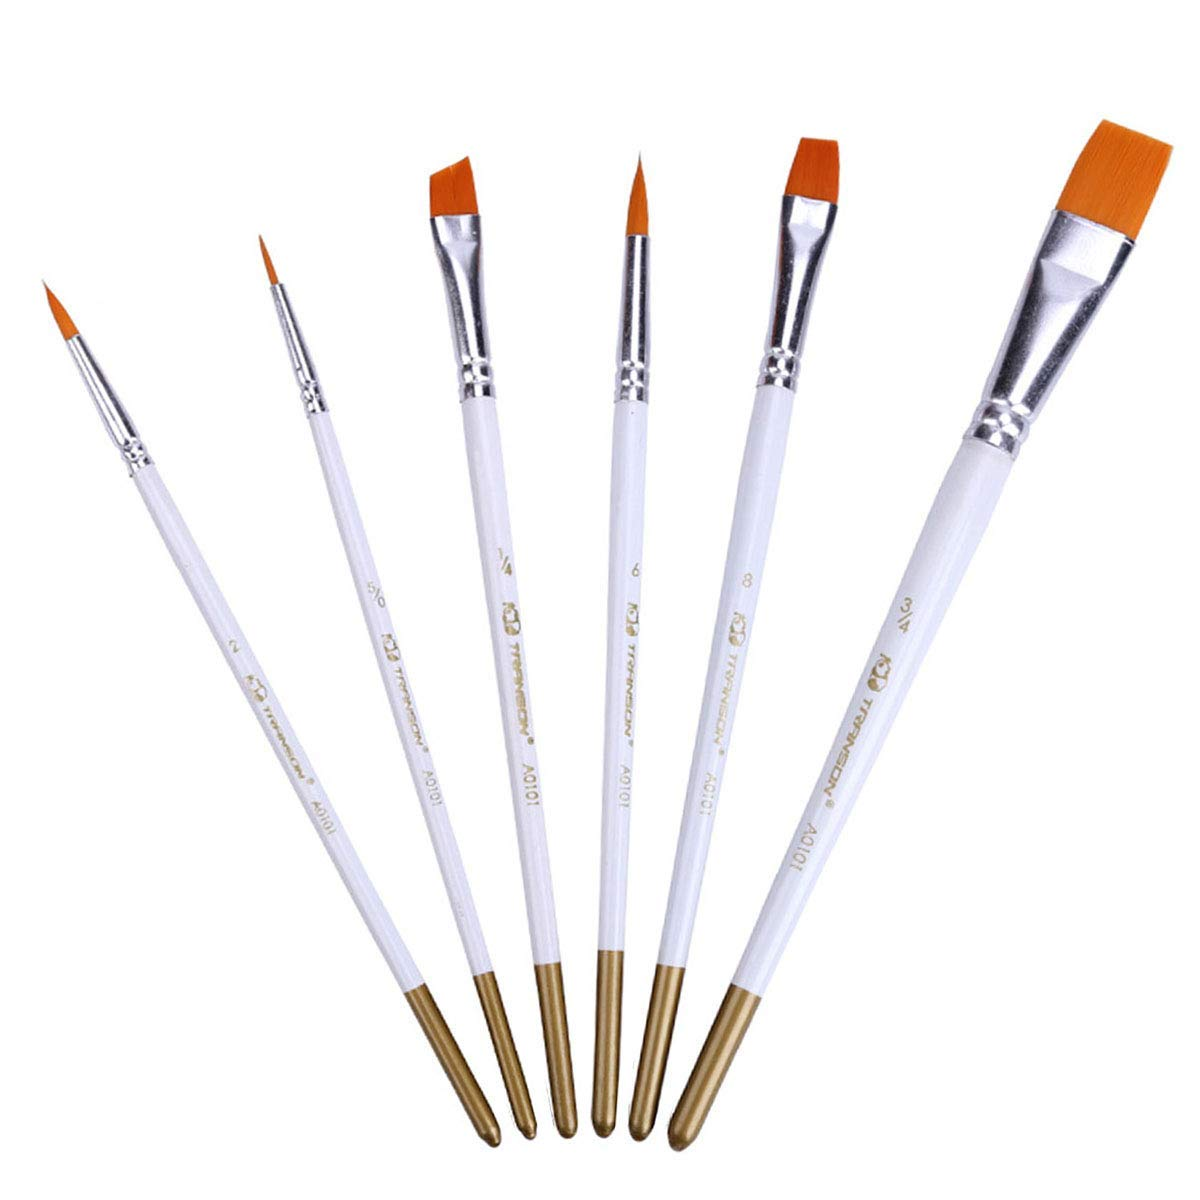 Artoop 6 Pieces Round Pointed Tip Nylon Hair Brush Set Flat Artist Acrylic Detail Paint Brush Set for Watercolor Oil Painting,White